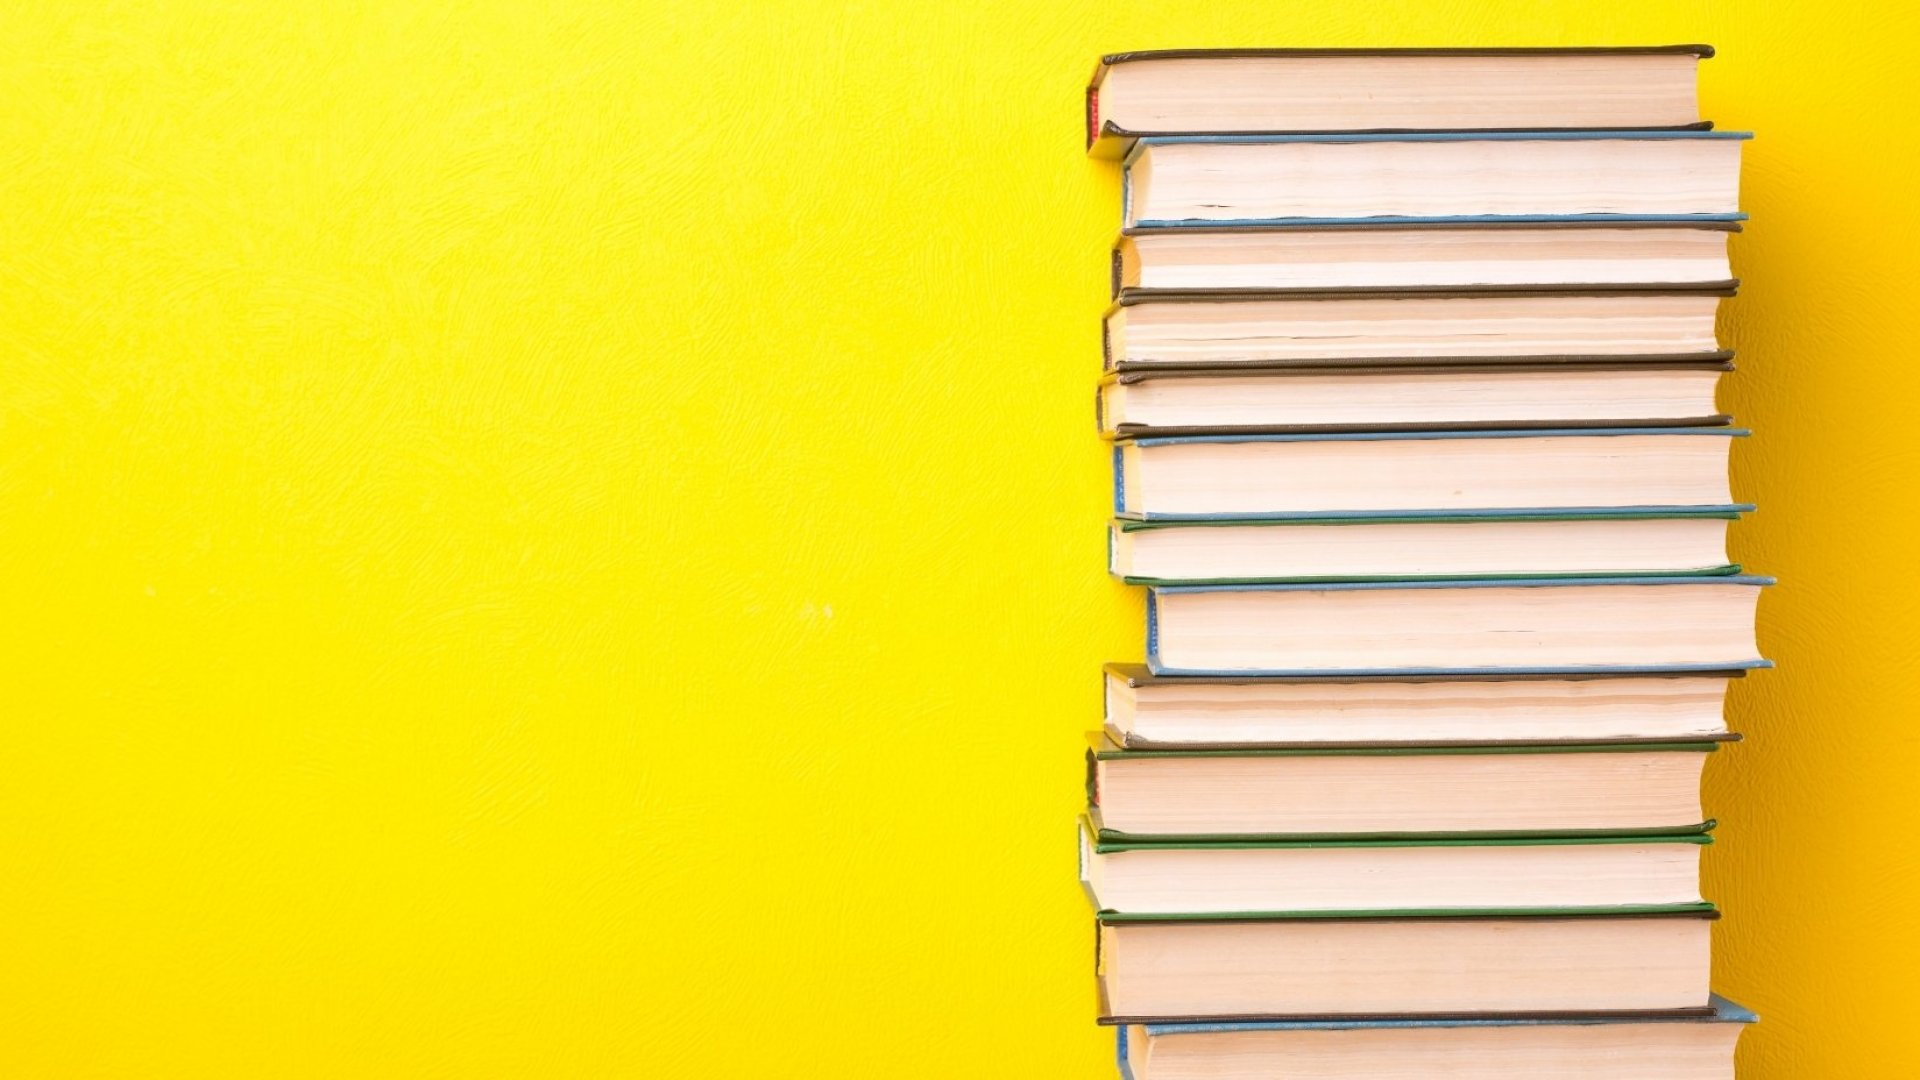 8 Easy Business Reads That Will Challenge Your Thinking and Help You Grow